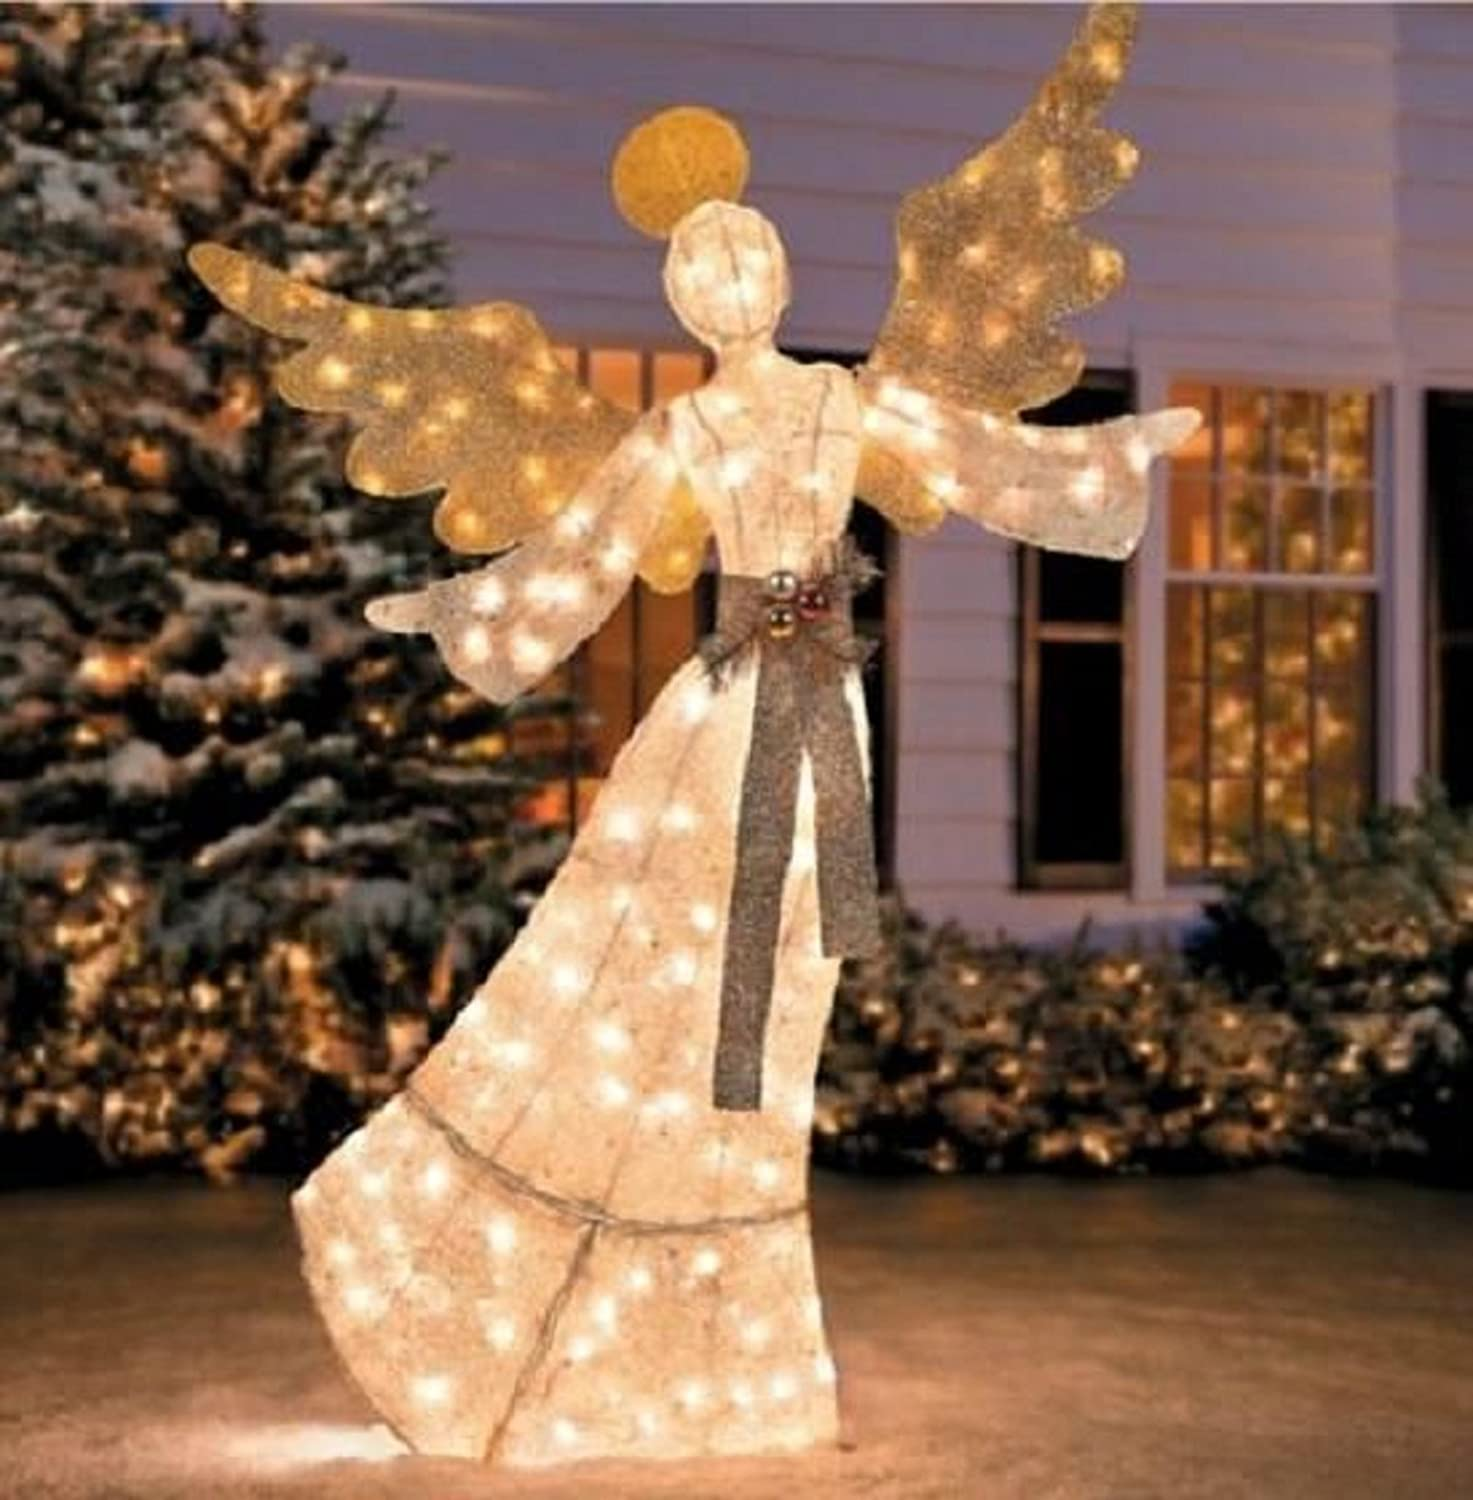 Outdoor Christmas Decorations: Angels Lighted Yard Displays